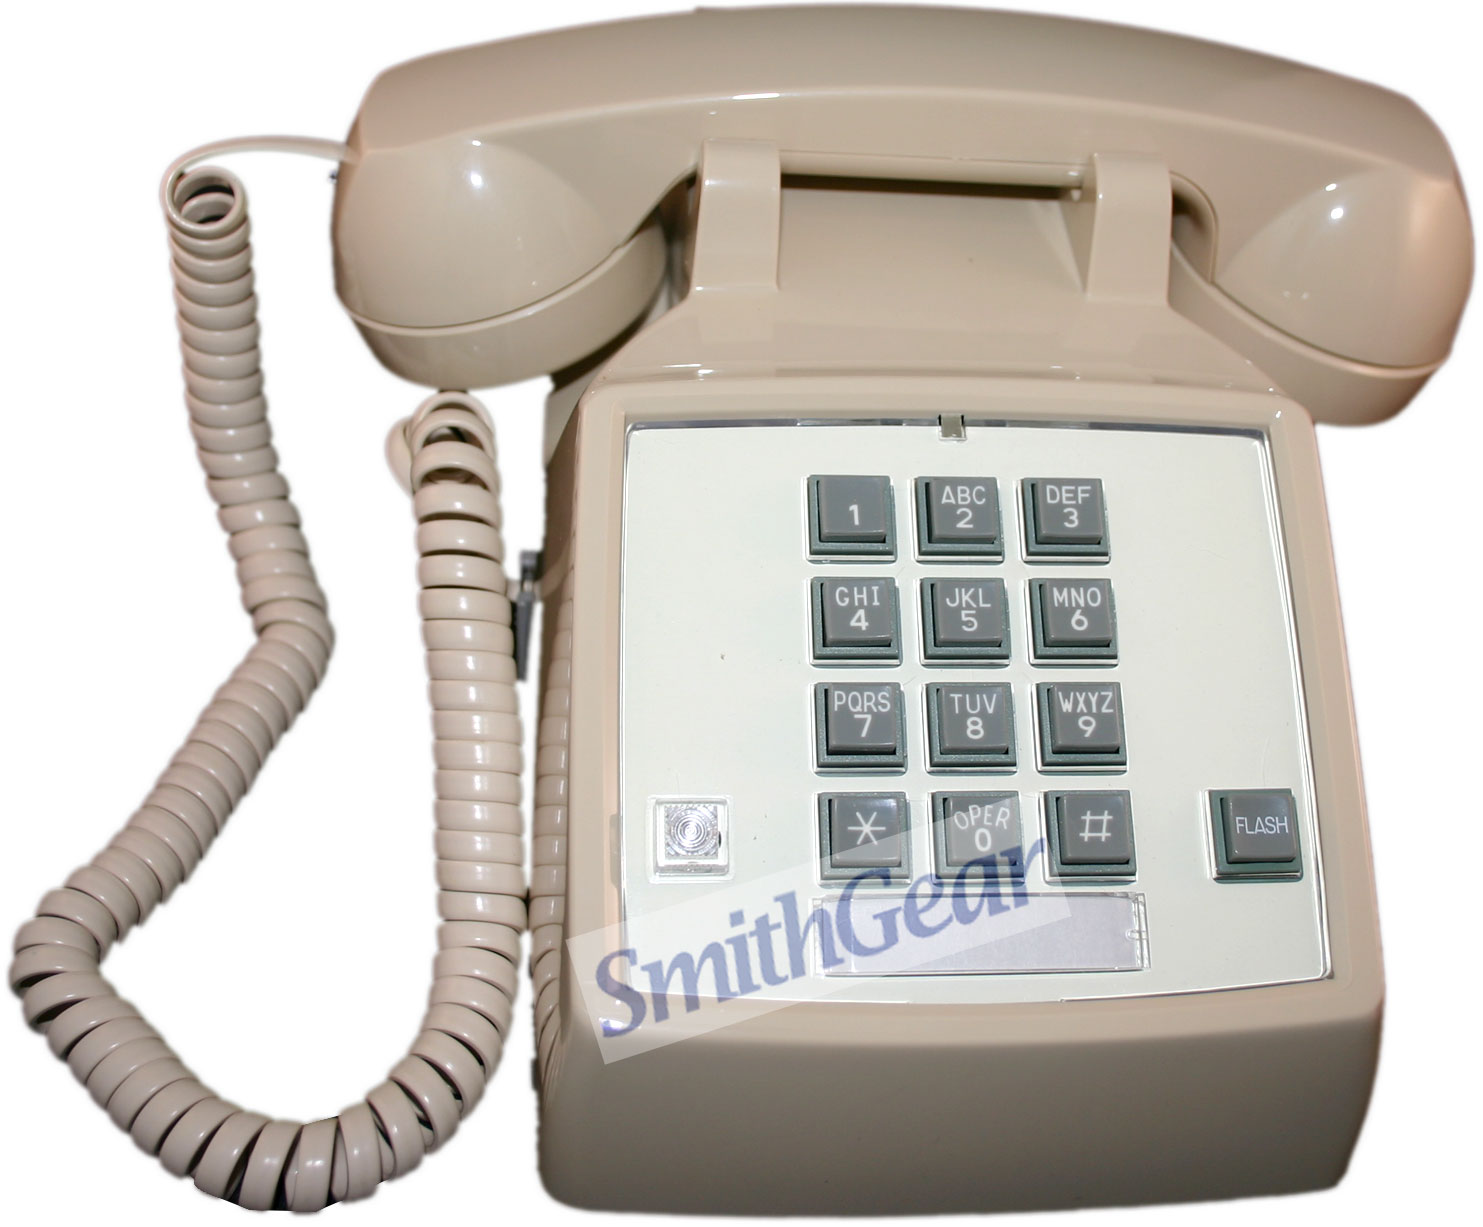 Uk telephone in addition 2017 New Samsung Flip Phone as well Telephone Cord Black likewise Power Lineman On Pole Silhouette besides Dsl Connection Too Slow Here S How To Speed It Up. on old telephone wiring diagram